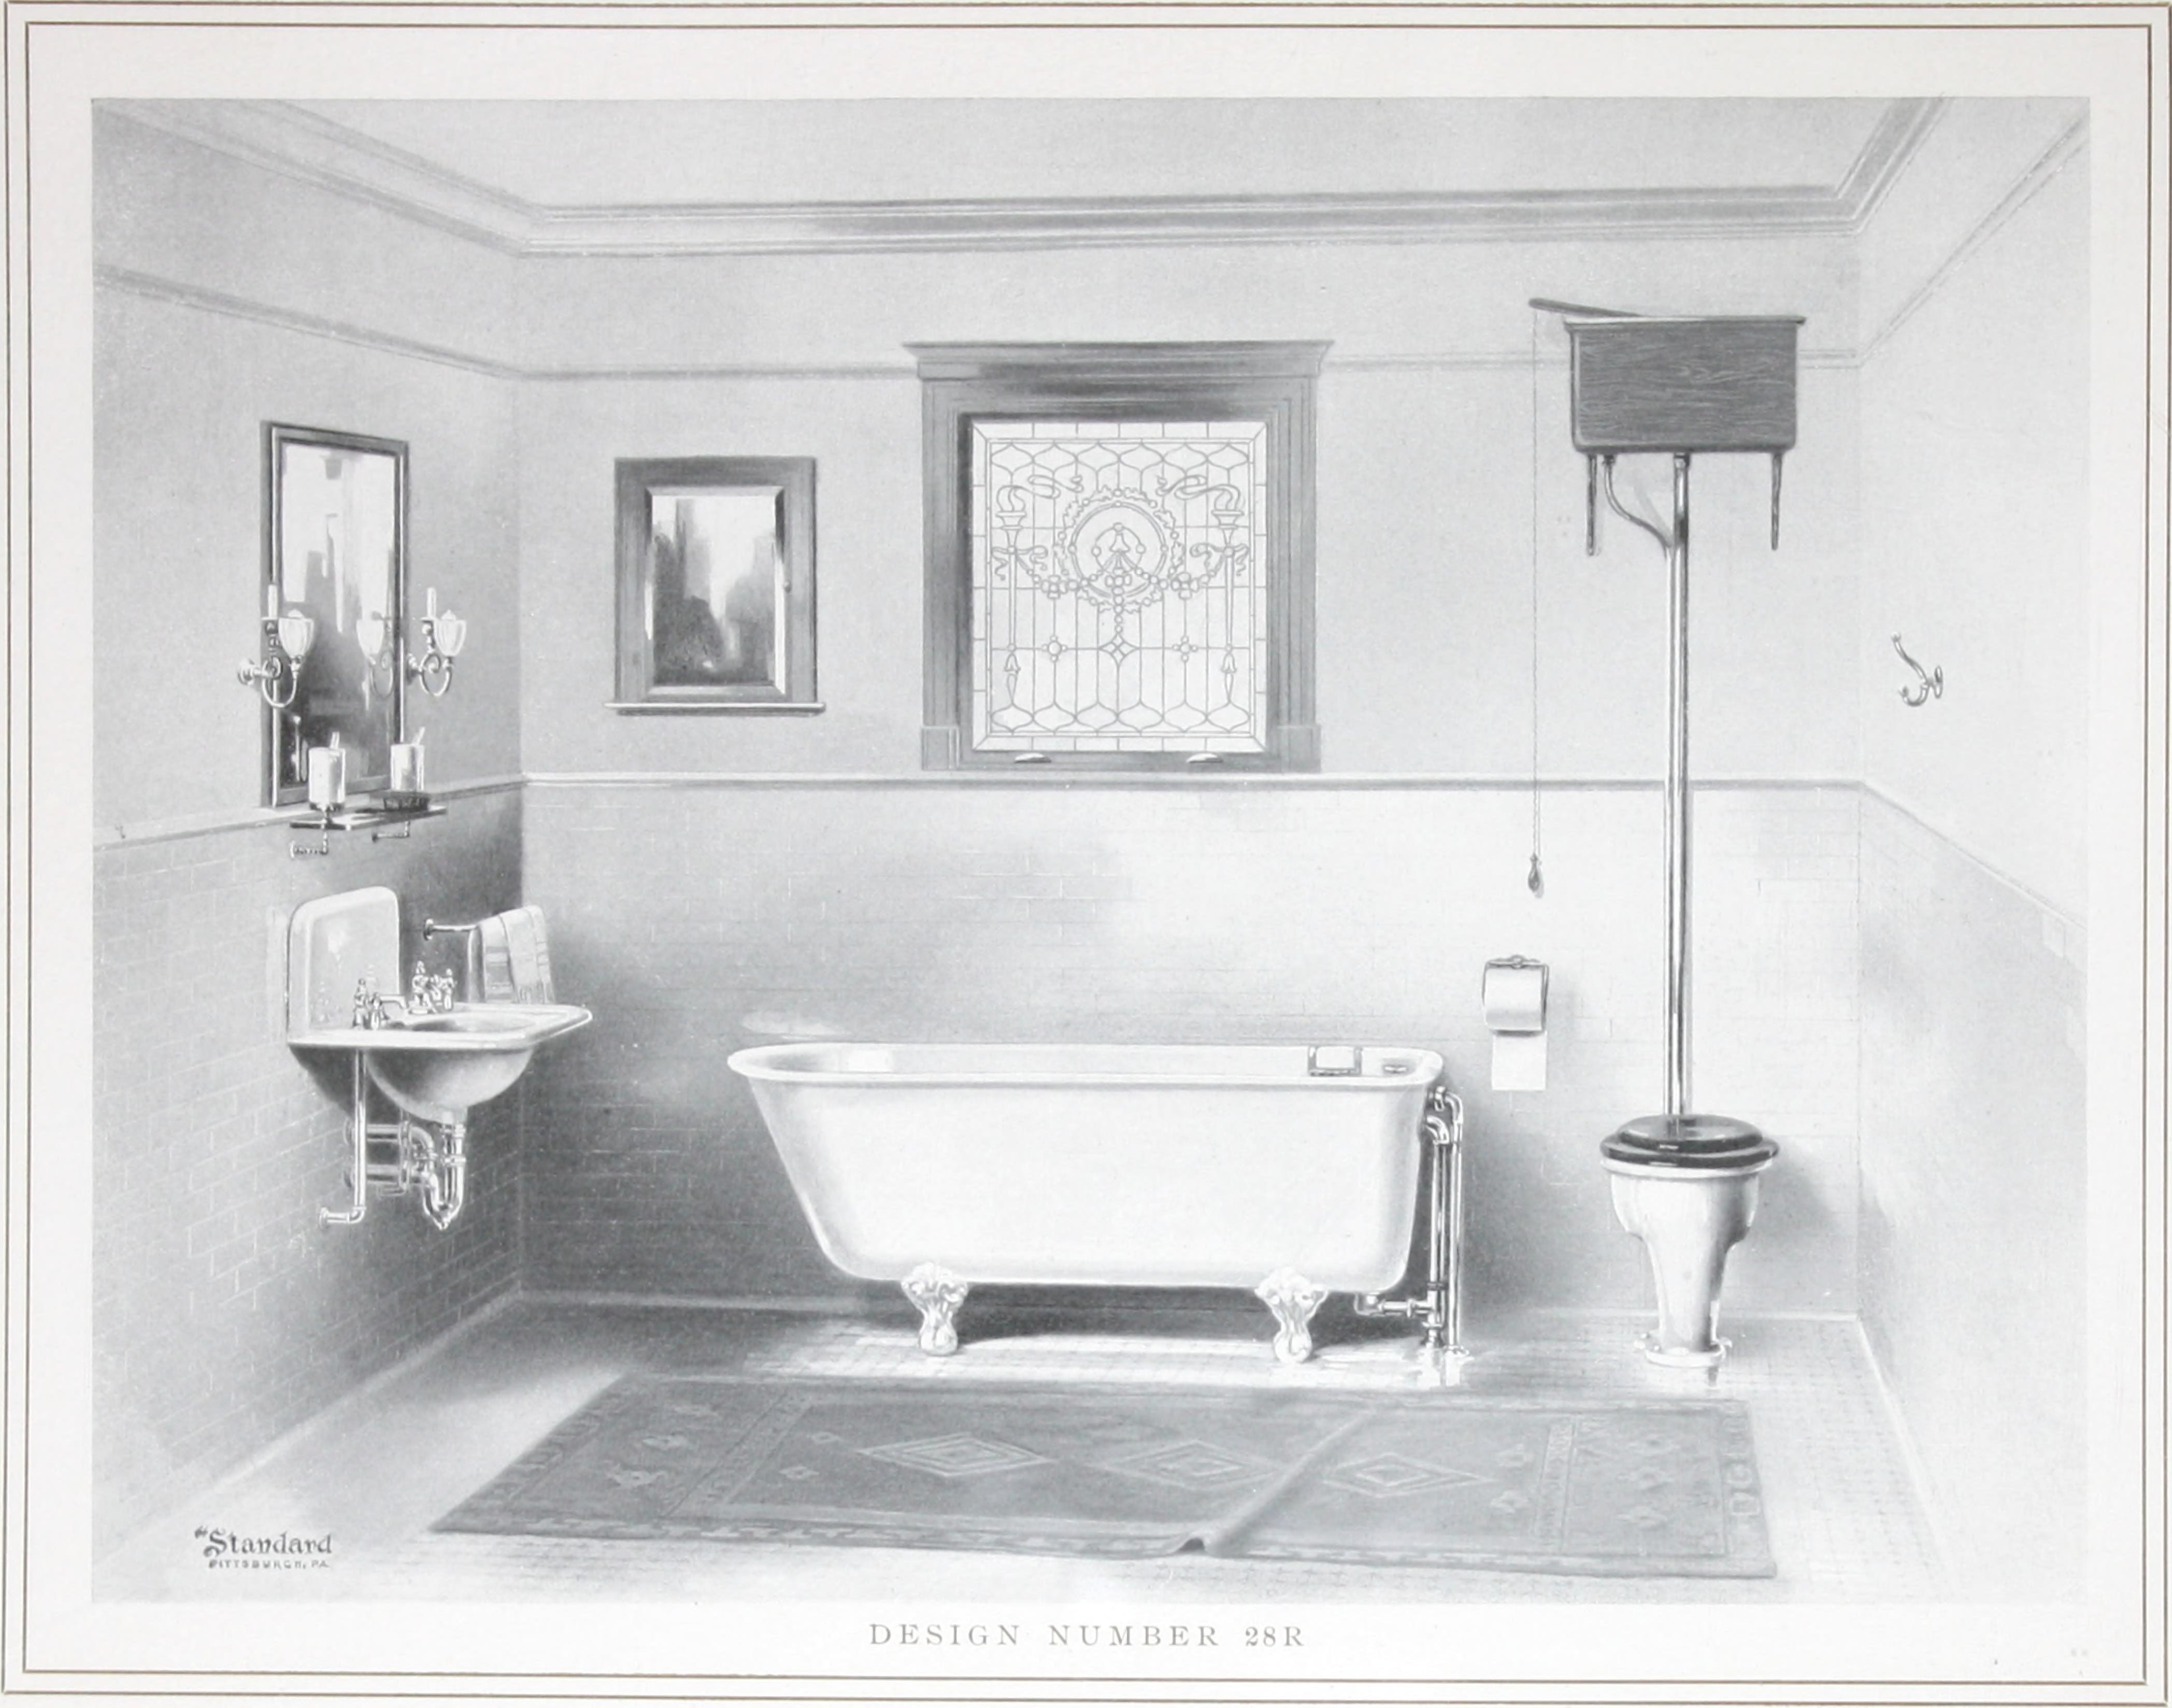 suggestions about plumbing valuable to home builders or those about to remodel their present dwellings. (1903) (14591677257).jpg English: Identifier: